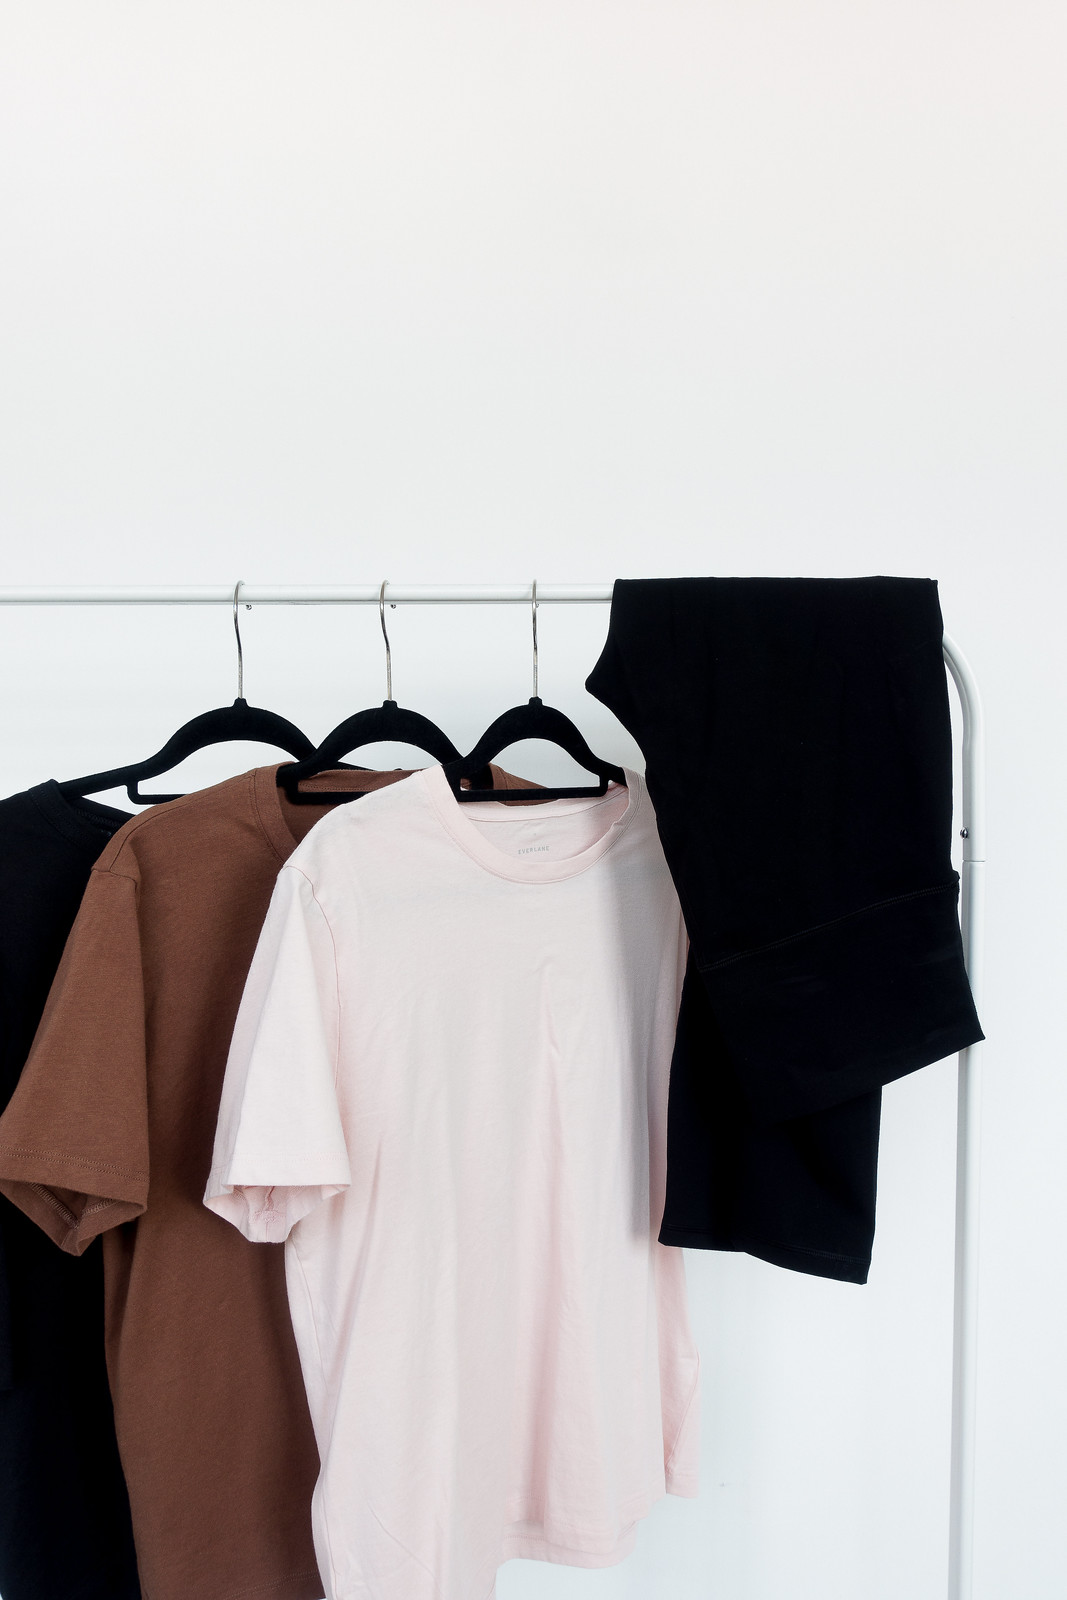 A Working From Home Capsule Wardrobe